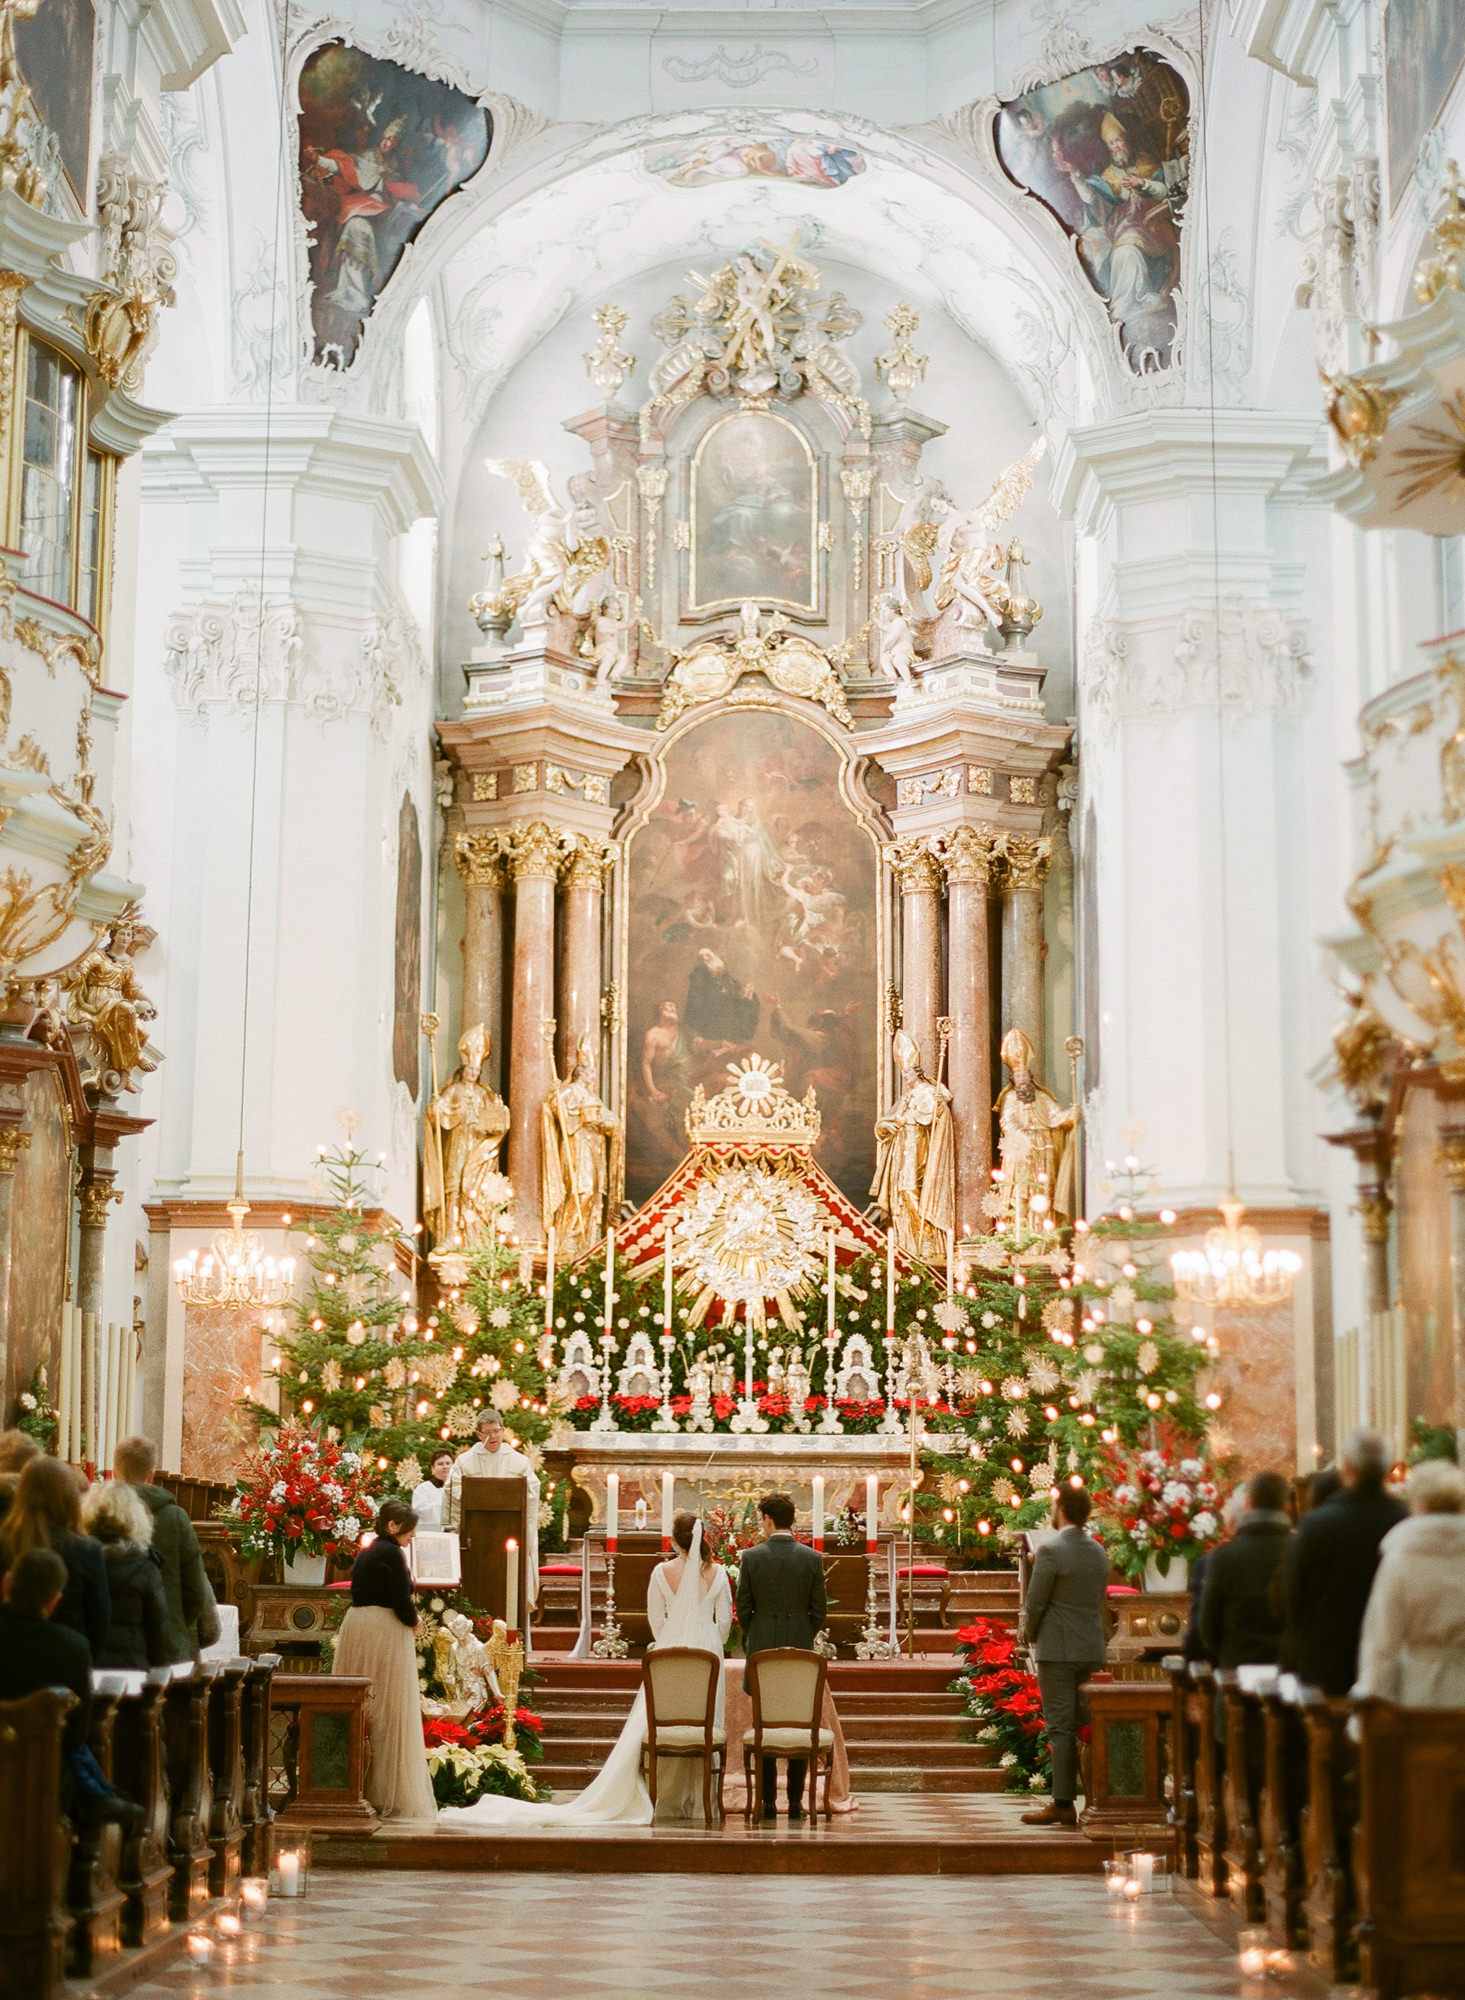 Wedding ceremony at a beautiful church in Europe, by Greg Finck